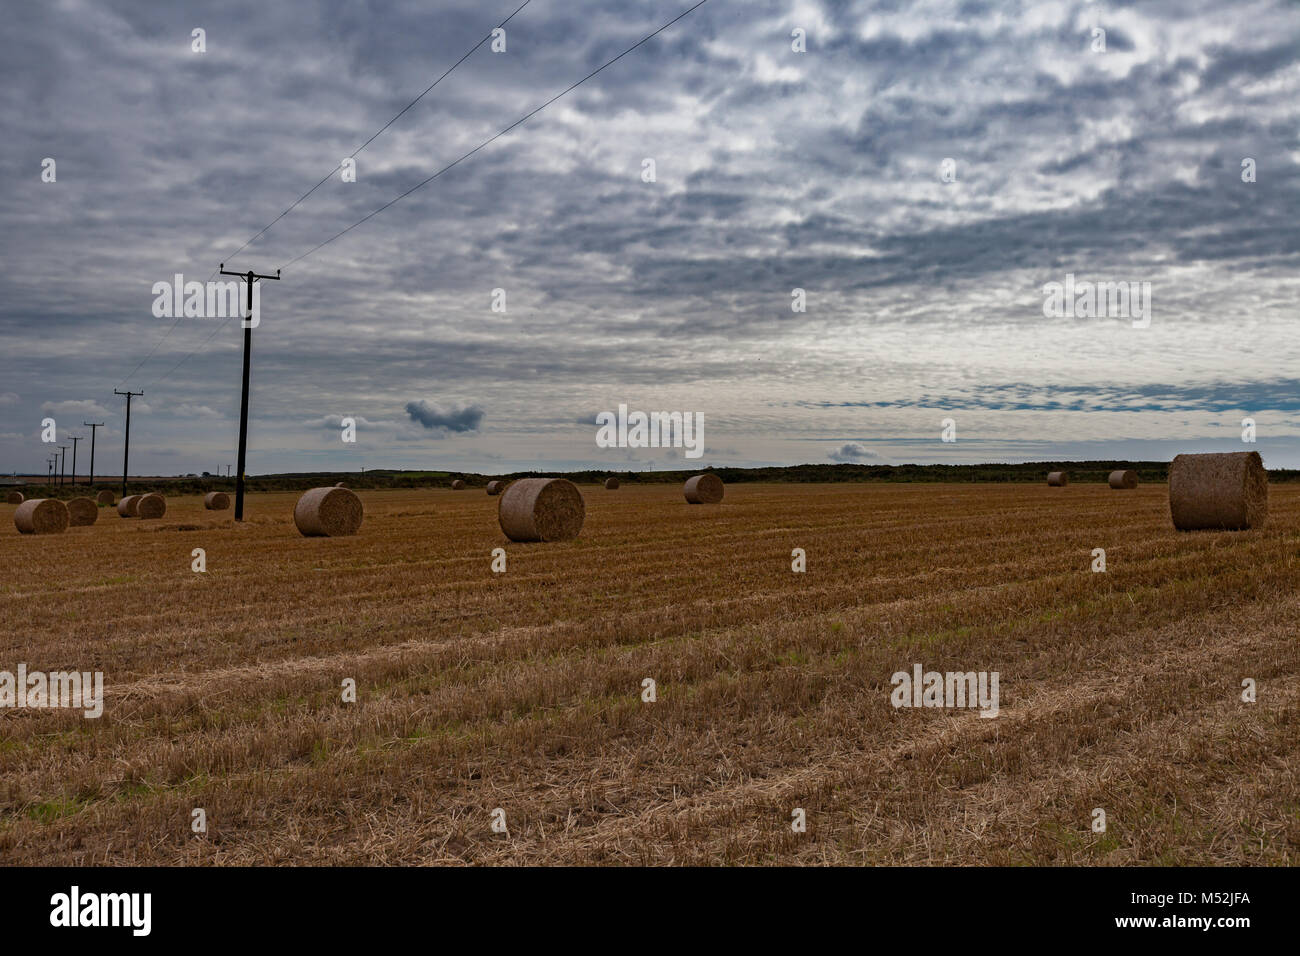 Wales landscape hayfield cloudy sky wide angle - Stock Image